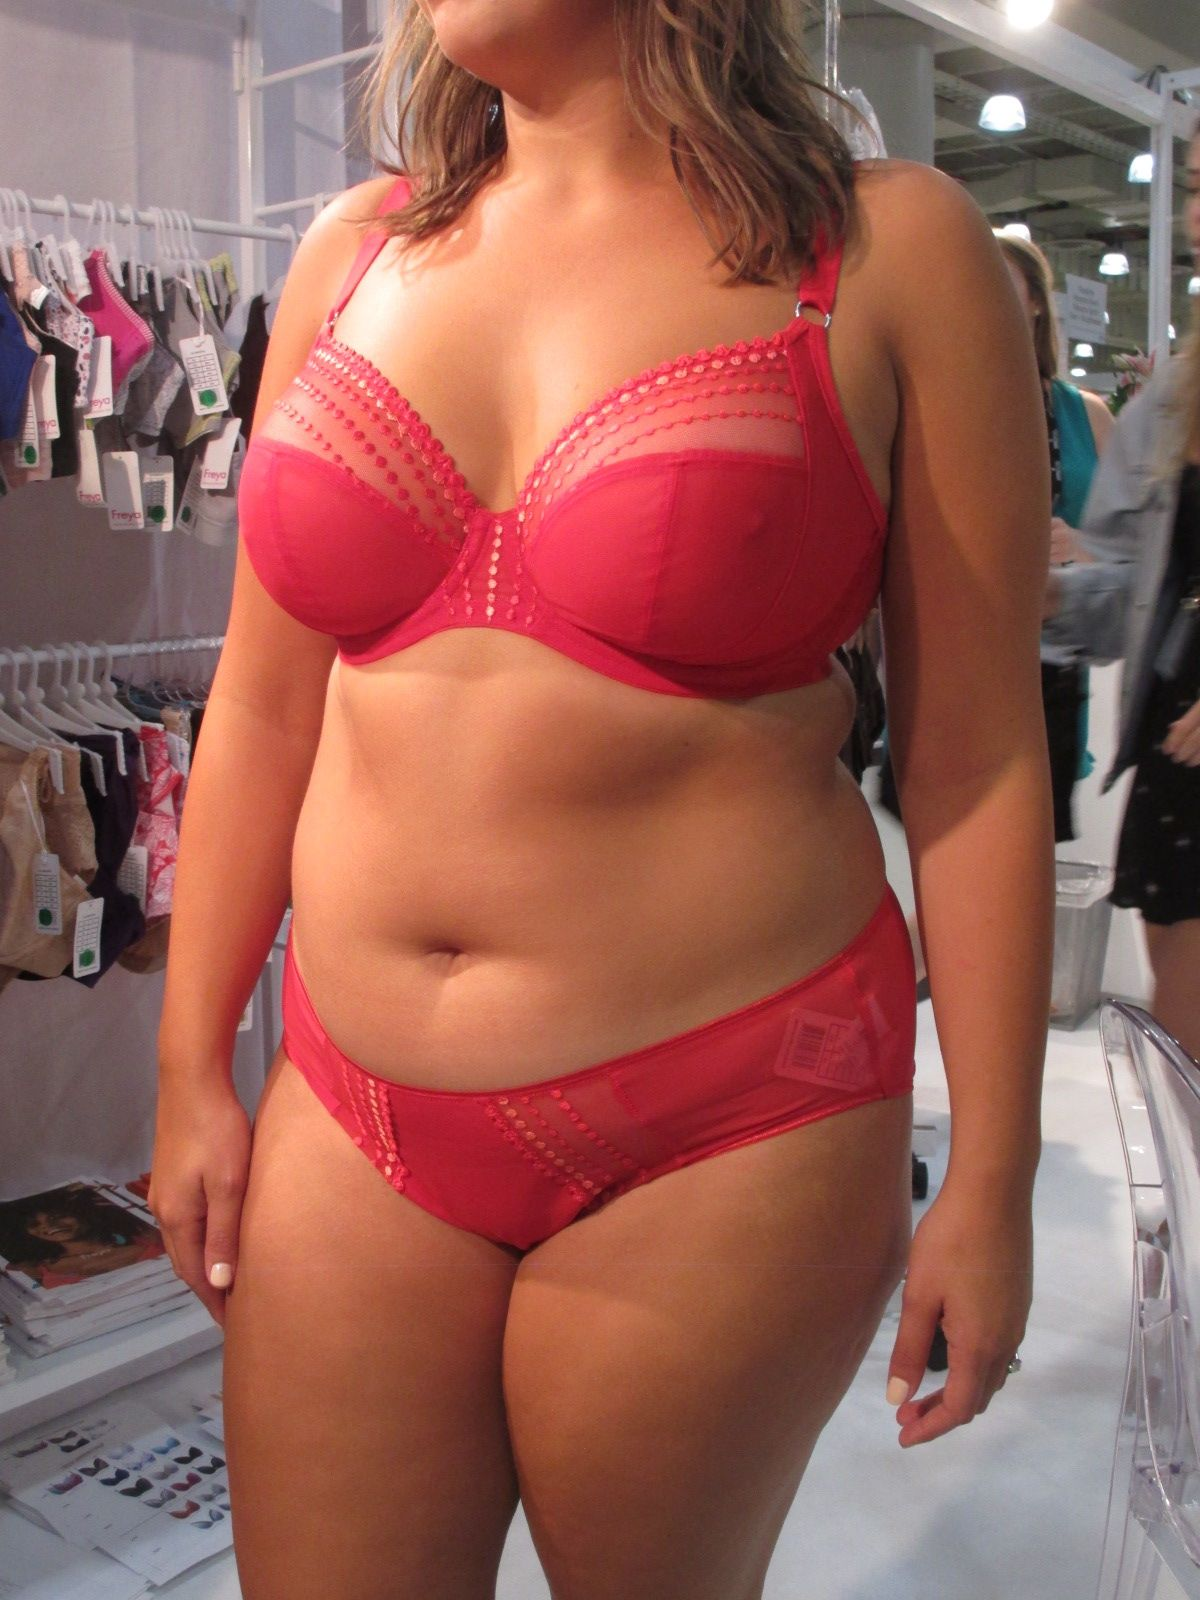 f534c92af78 From Curve Expo  new Elomi Matilda Plunge Bra Colors!